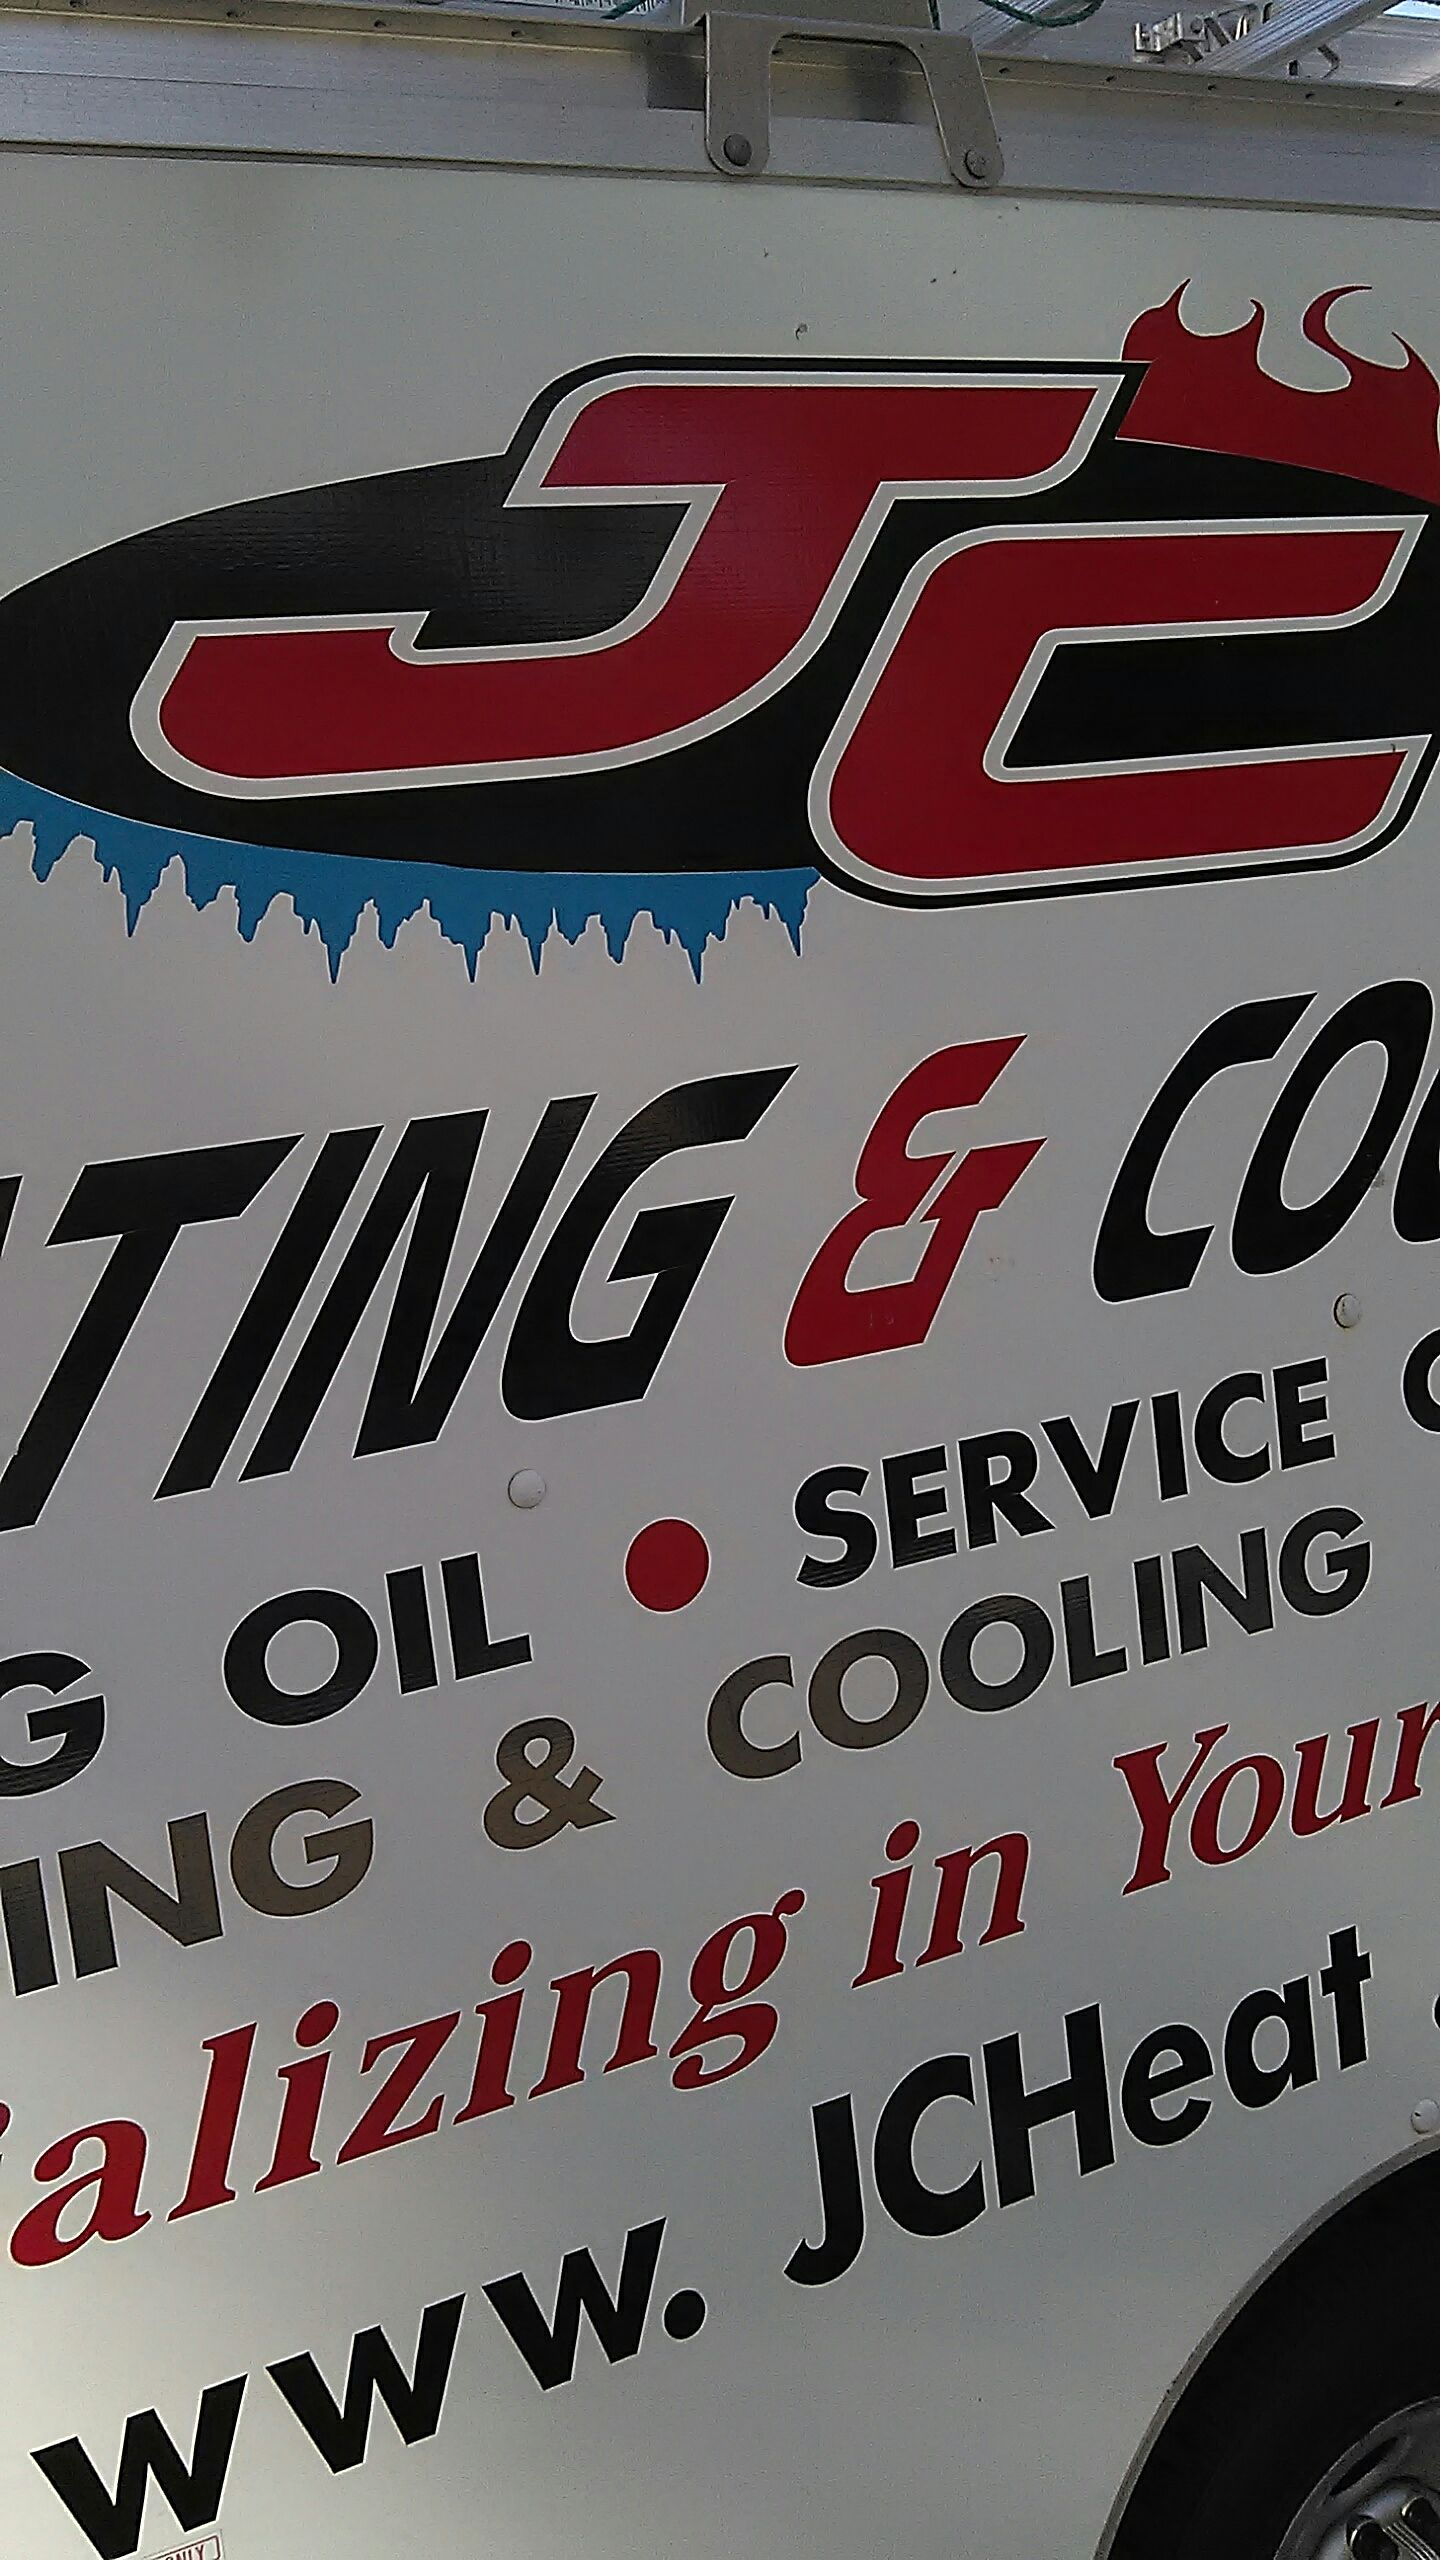 Jc Heating Cooling Job Location Near Hatboro Rd Richboro Pa